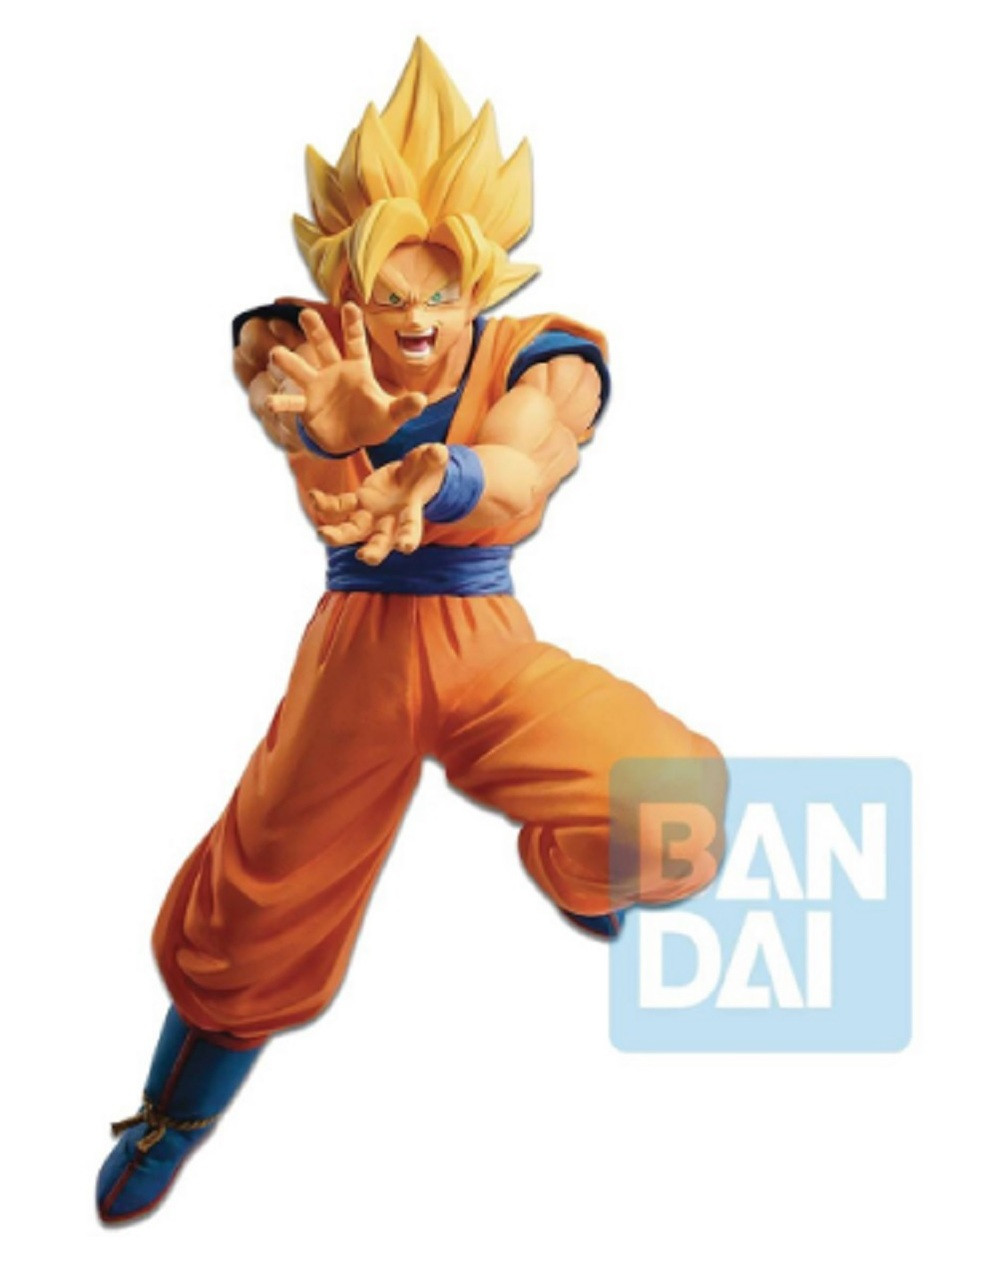 Dragon Ball Z - The Android Battle - w Dragon Ball Fighterz Super Saiyan Son Goku Figure - 7.5 Inch